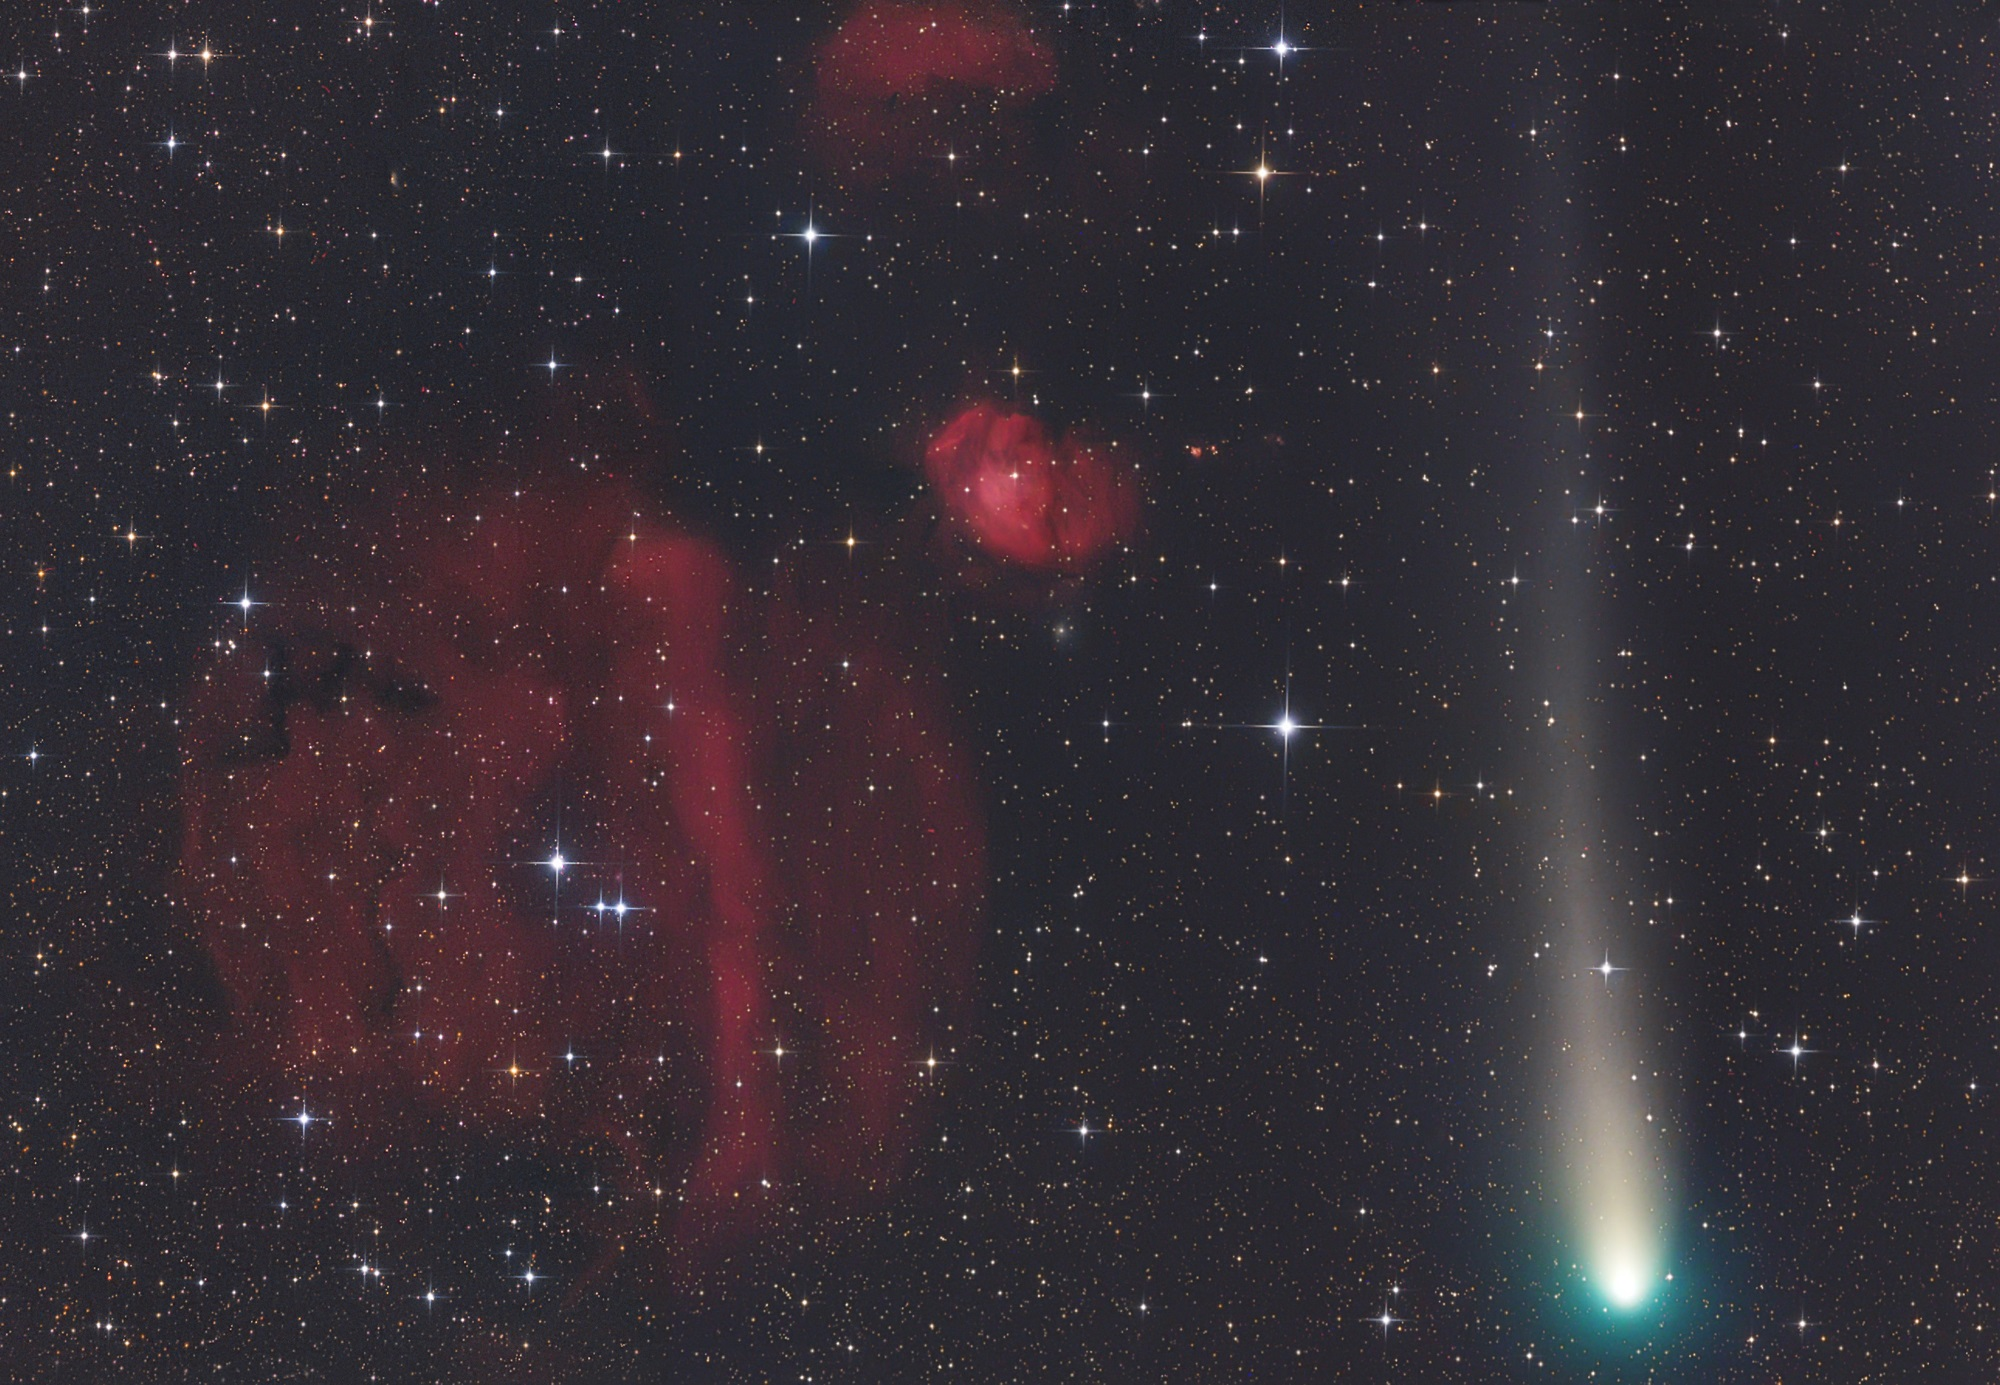 Insight Investment Astronomy Photographer of the Year 2019: Planets, Comets and Asteroids - Colourful Encounter © Gerald Rhemann